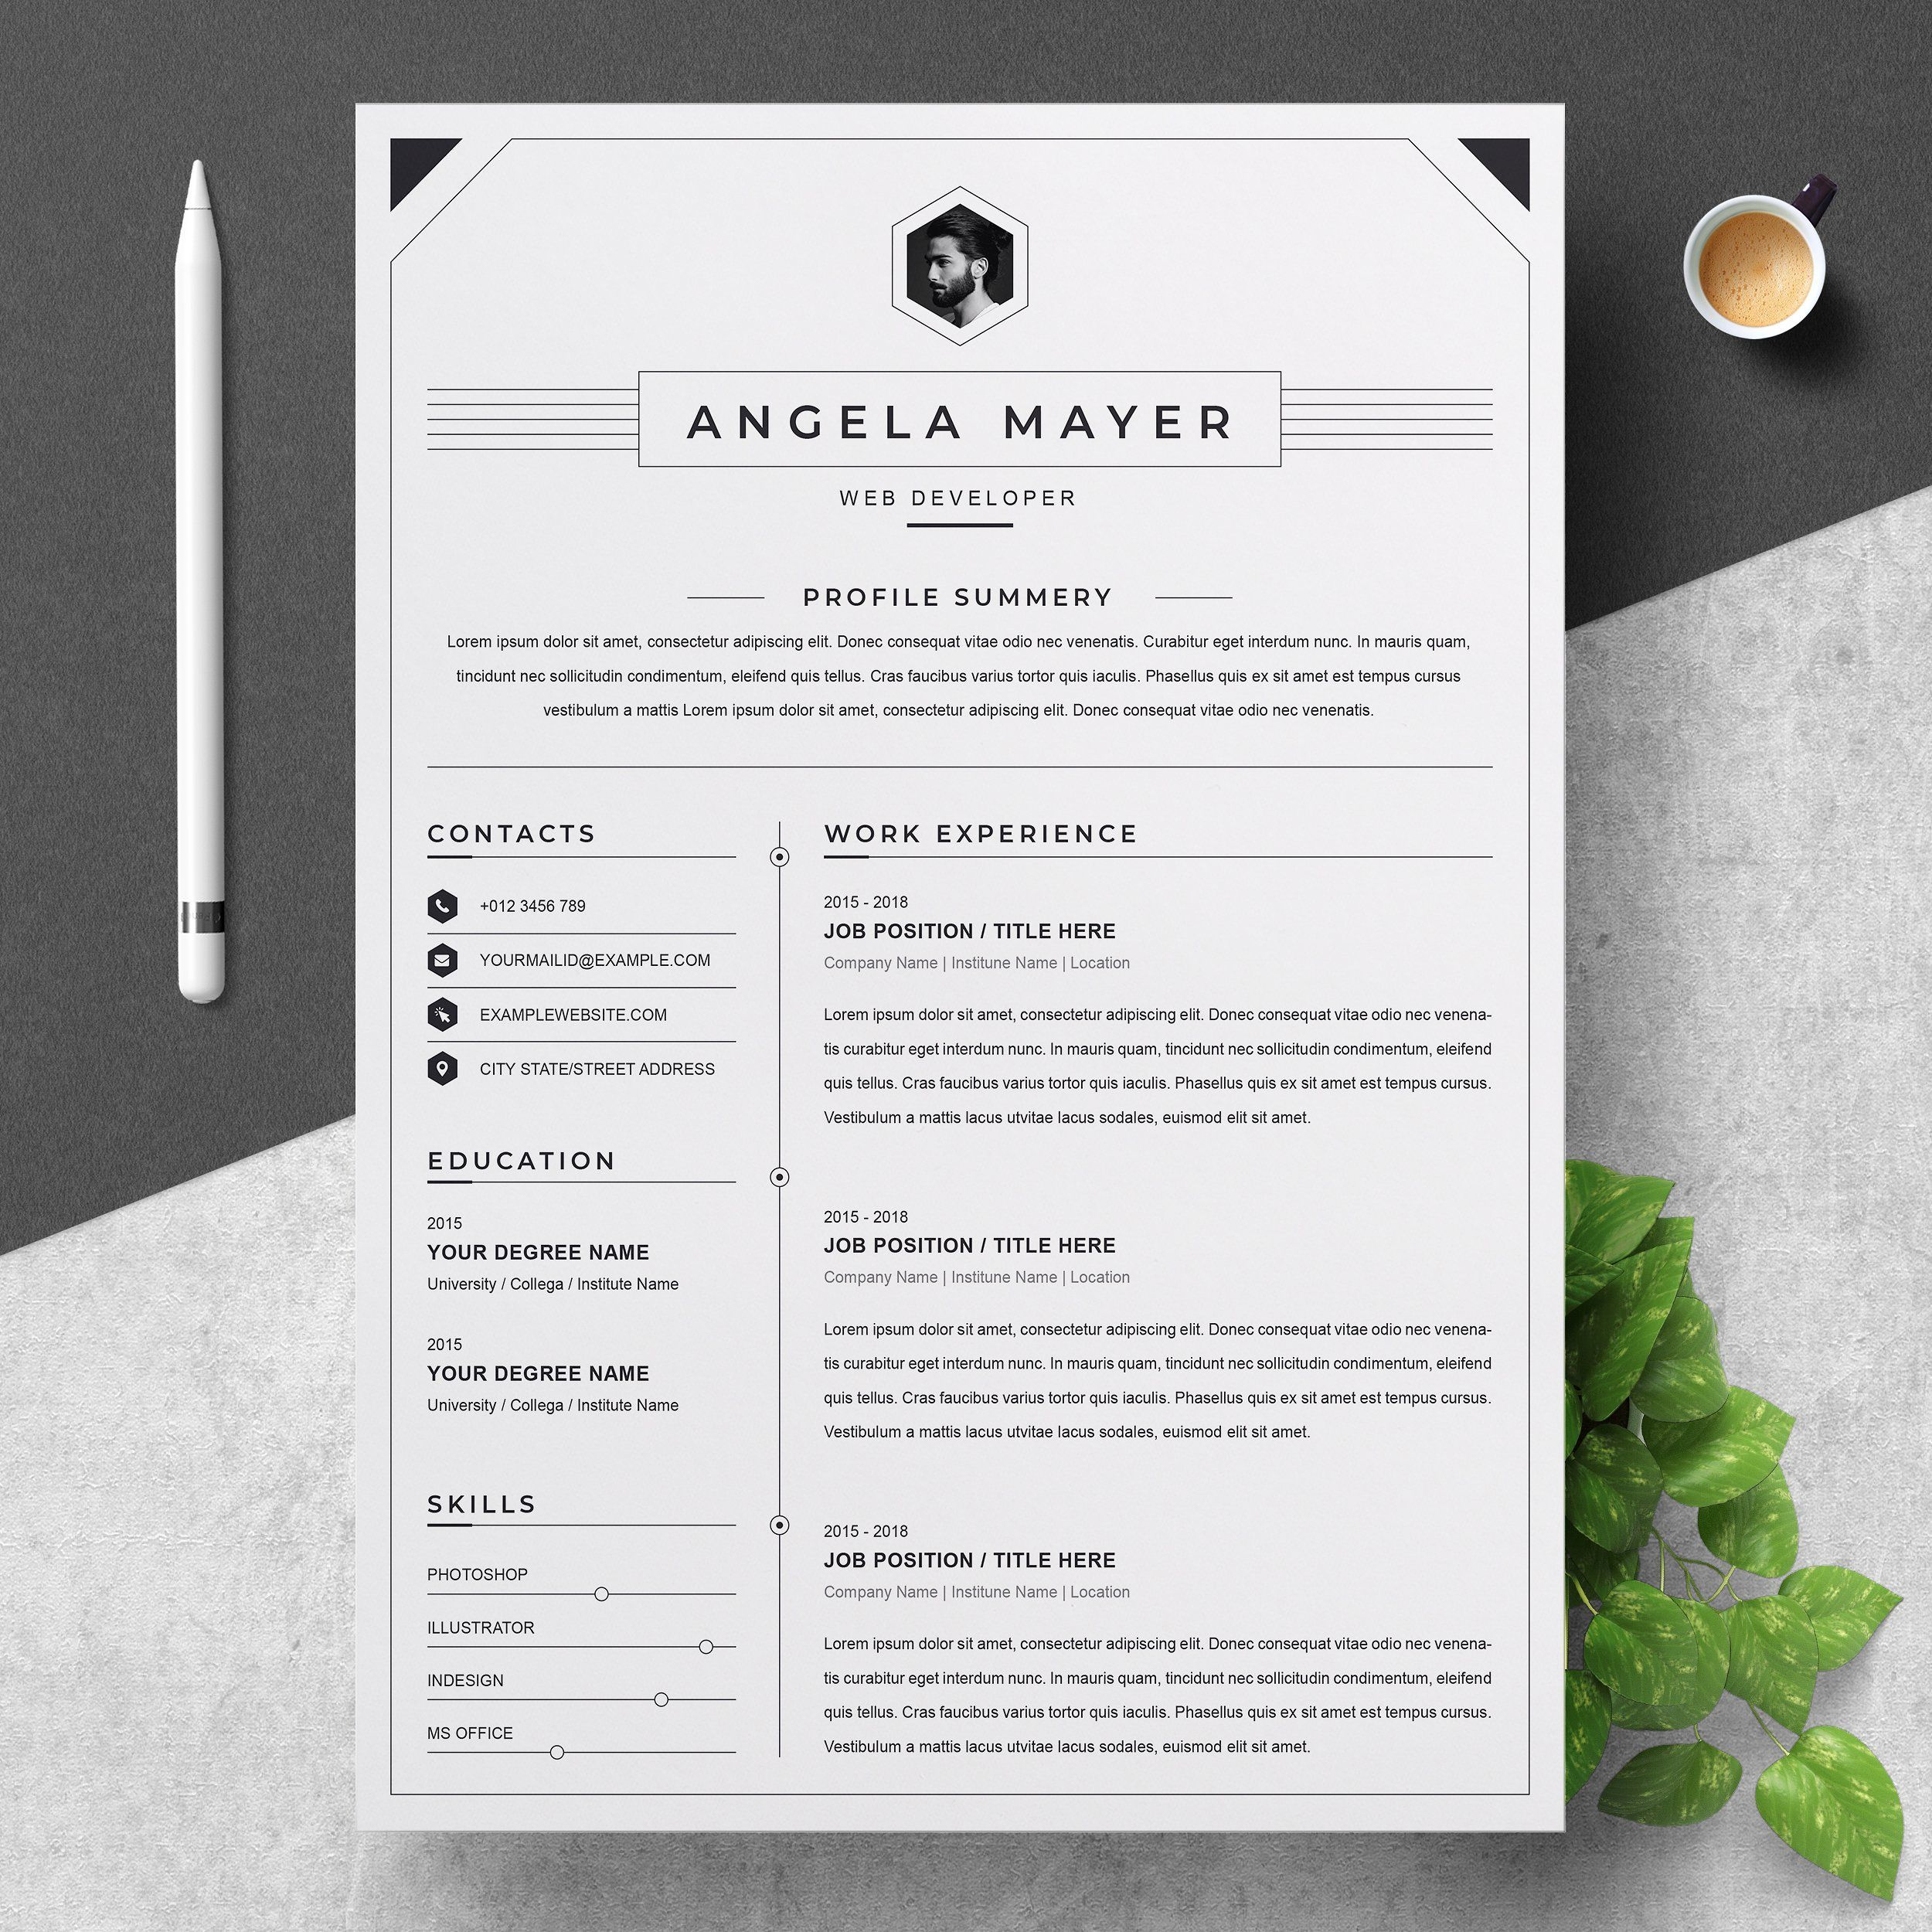 Clean And Professional Resume Cv Creative Resume Templates Resume Design Resume Cv